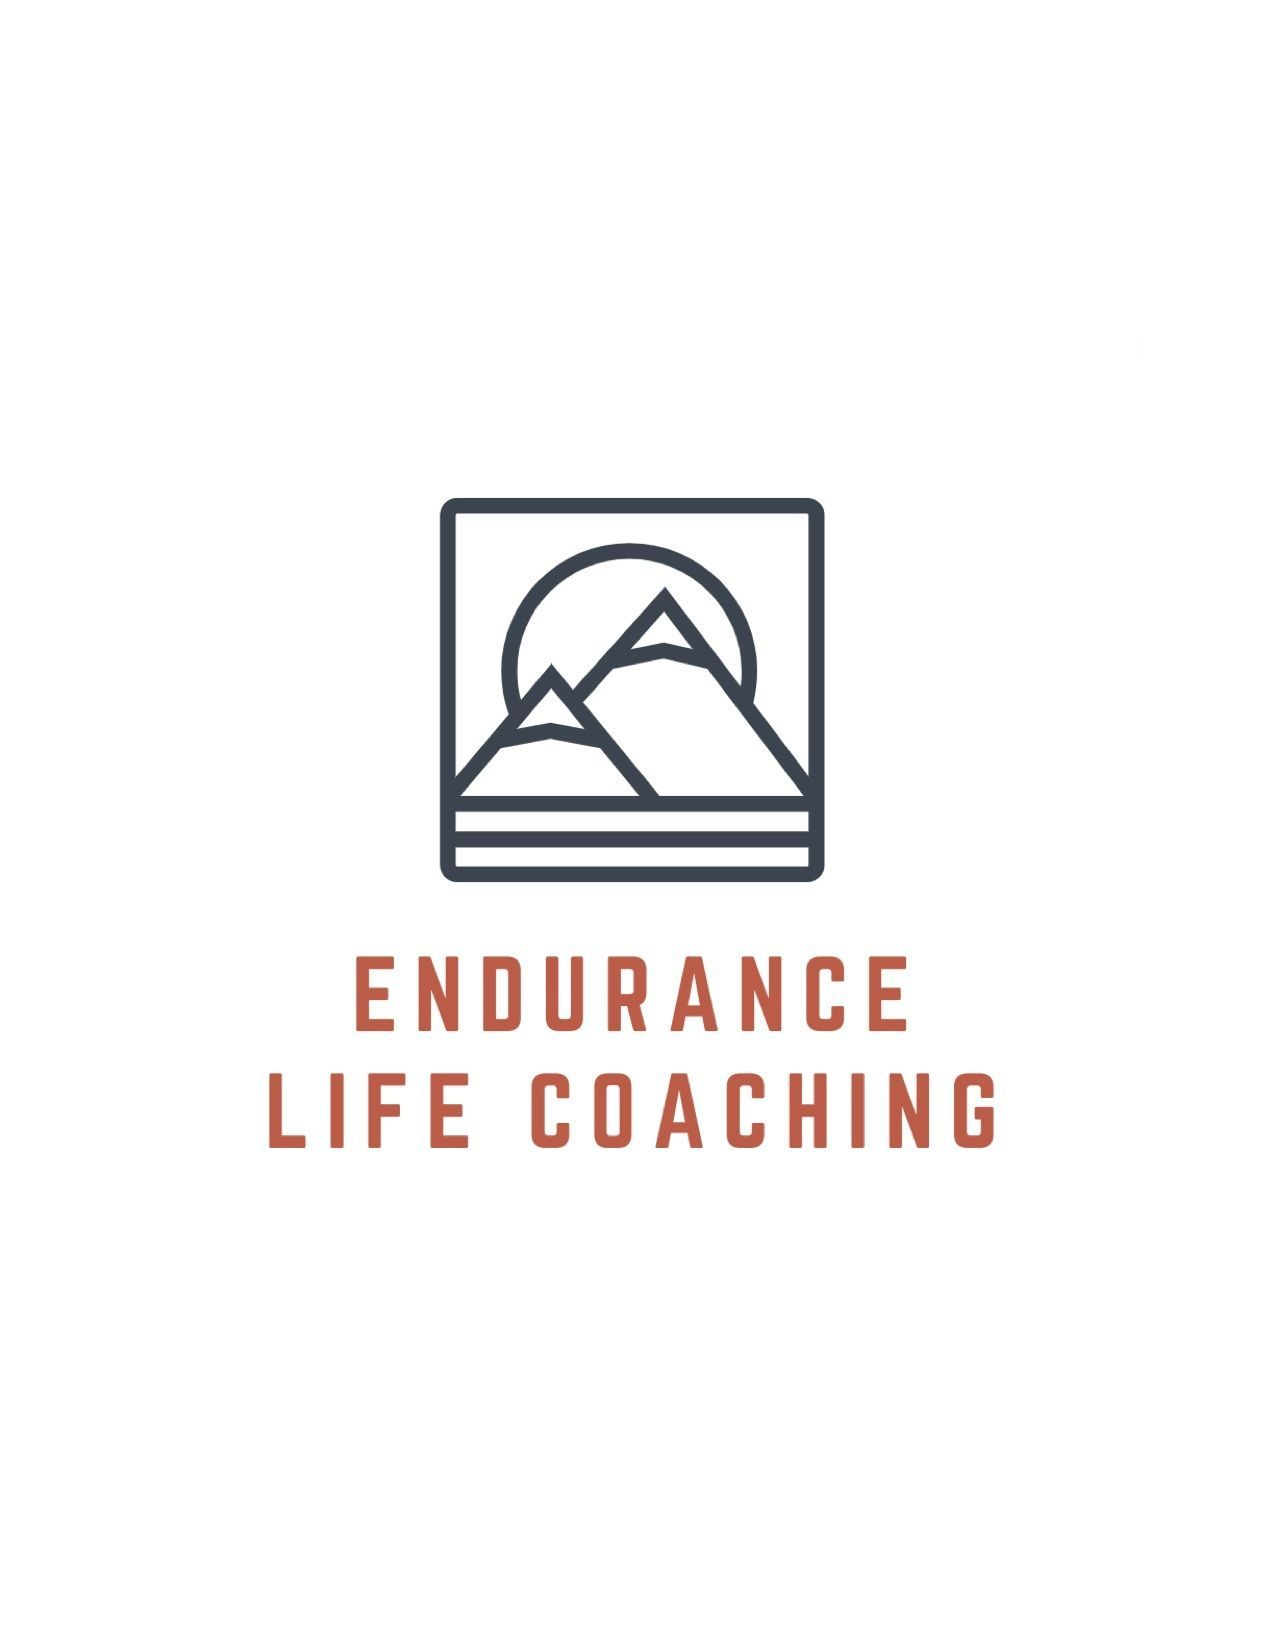 Endurance Life Coaching